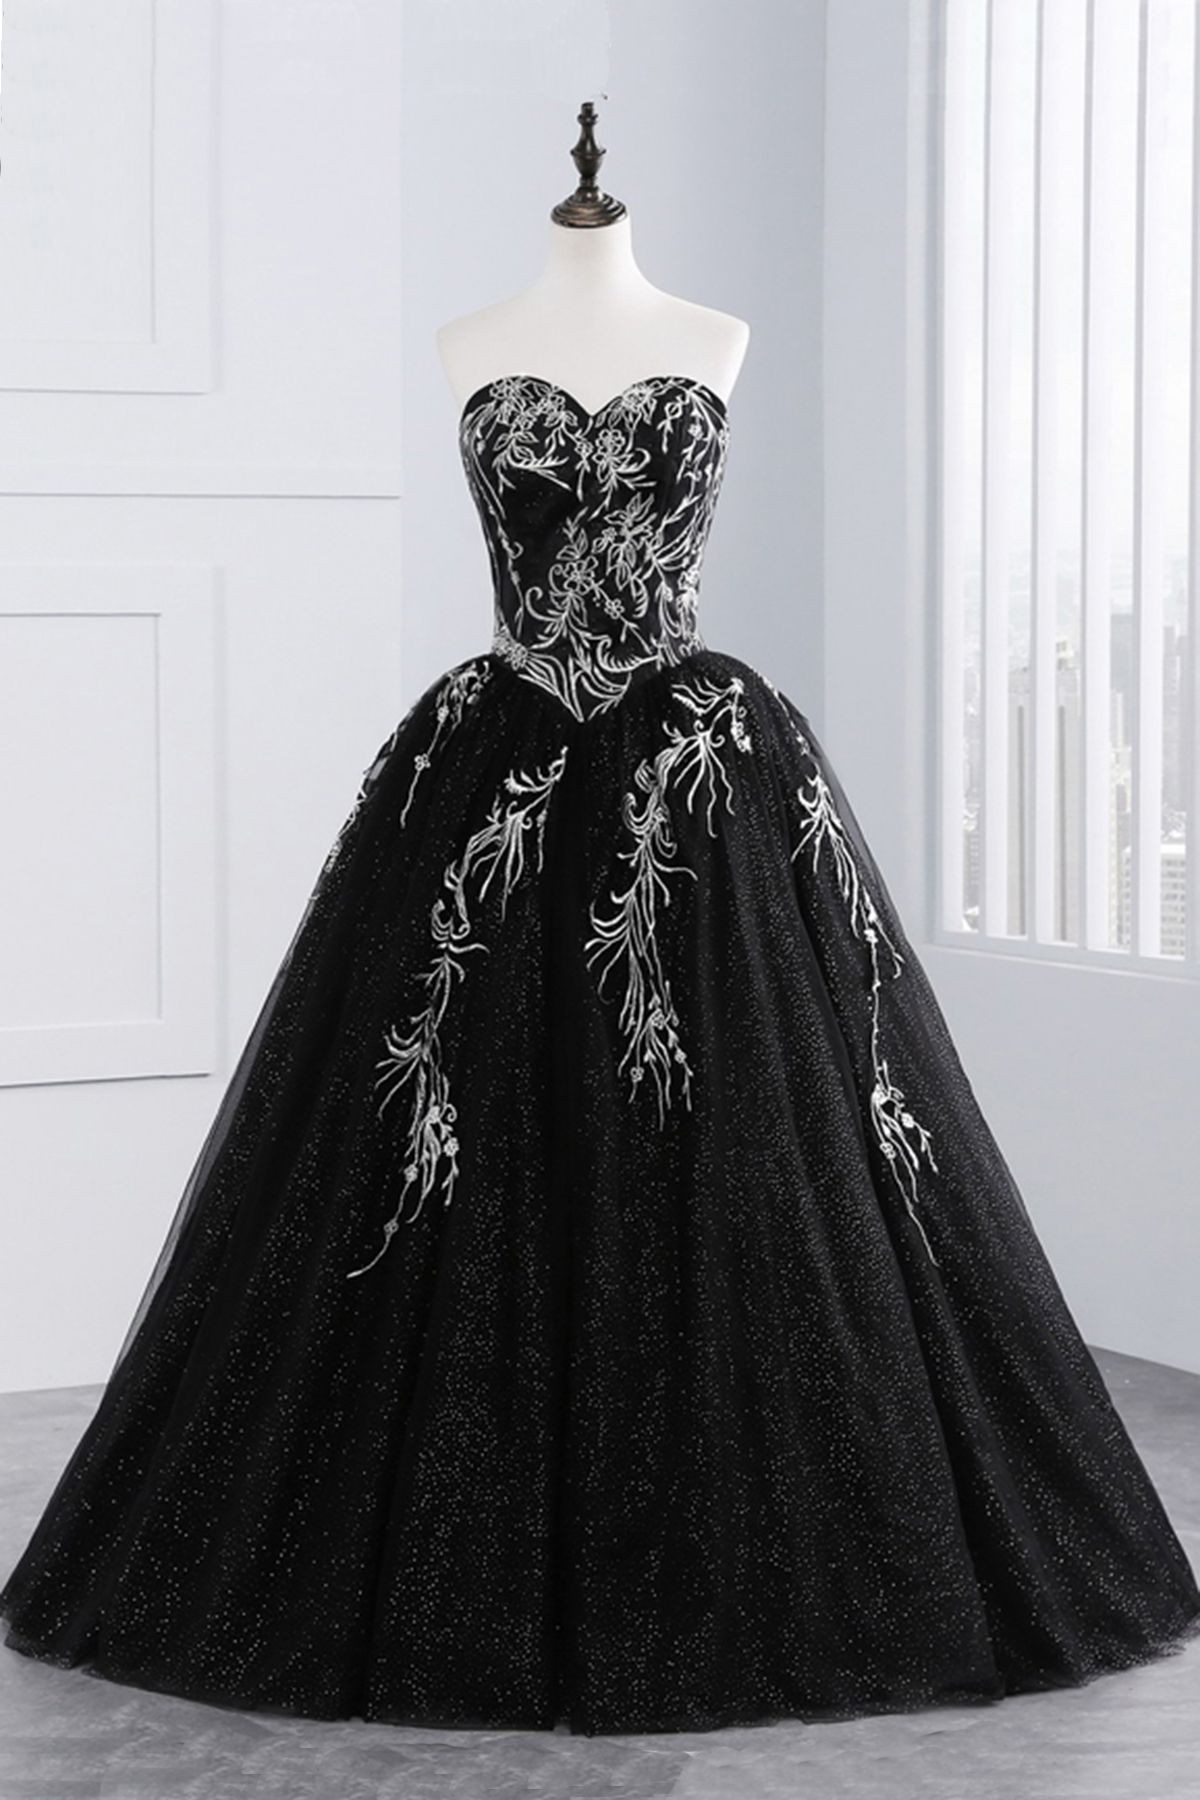 Princess Black Tulle Long Prom Gown Strapless Long A Line Evening Dress Backless Prom Dresses Black Quinceanera Dresses Black Ball Gown [ 1800 x 1200 Pixel ]